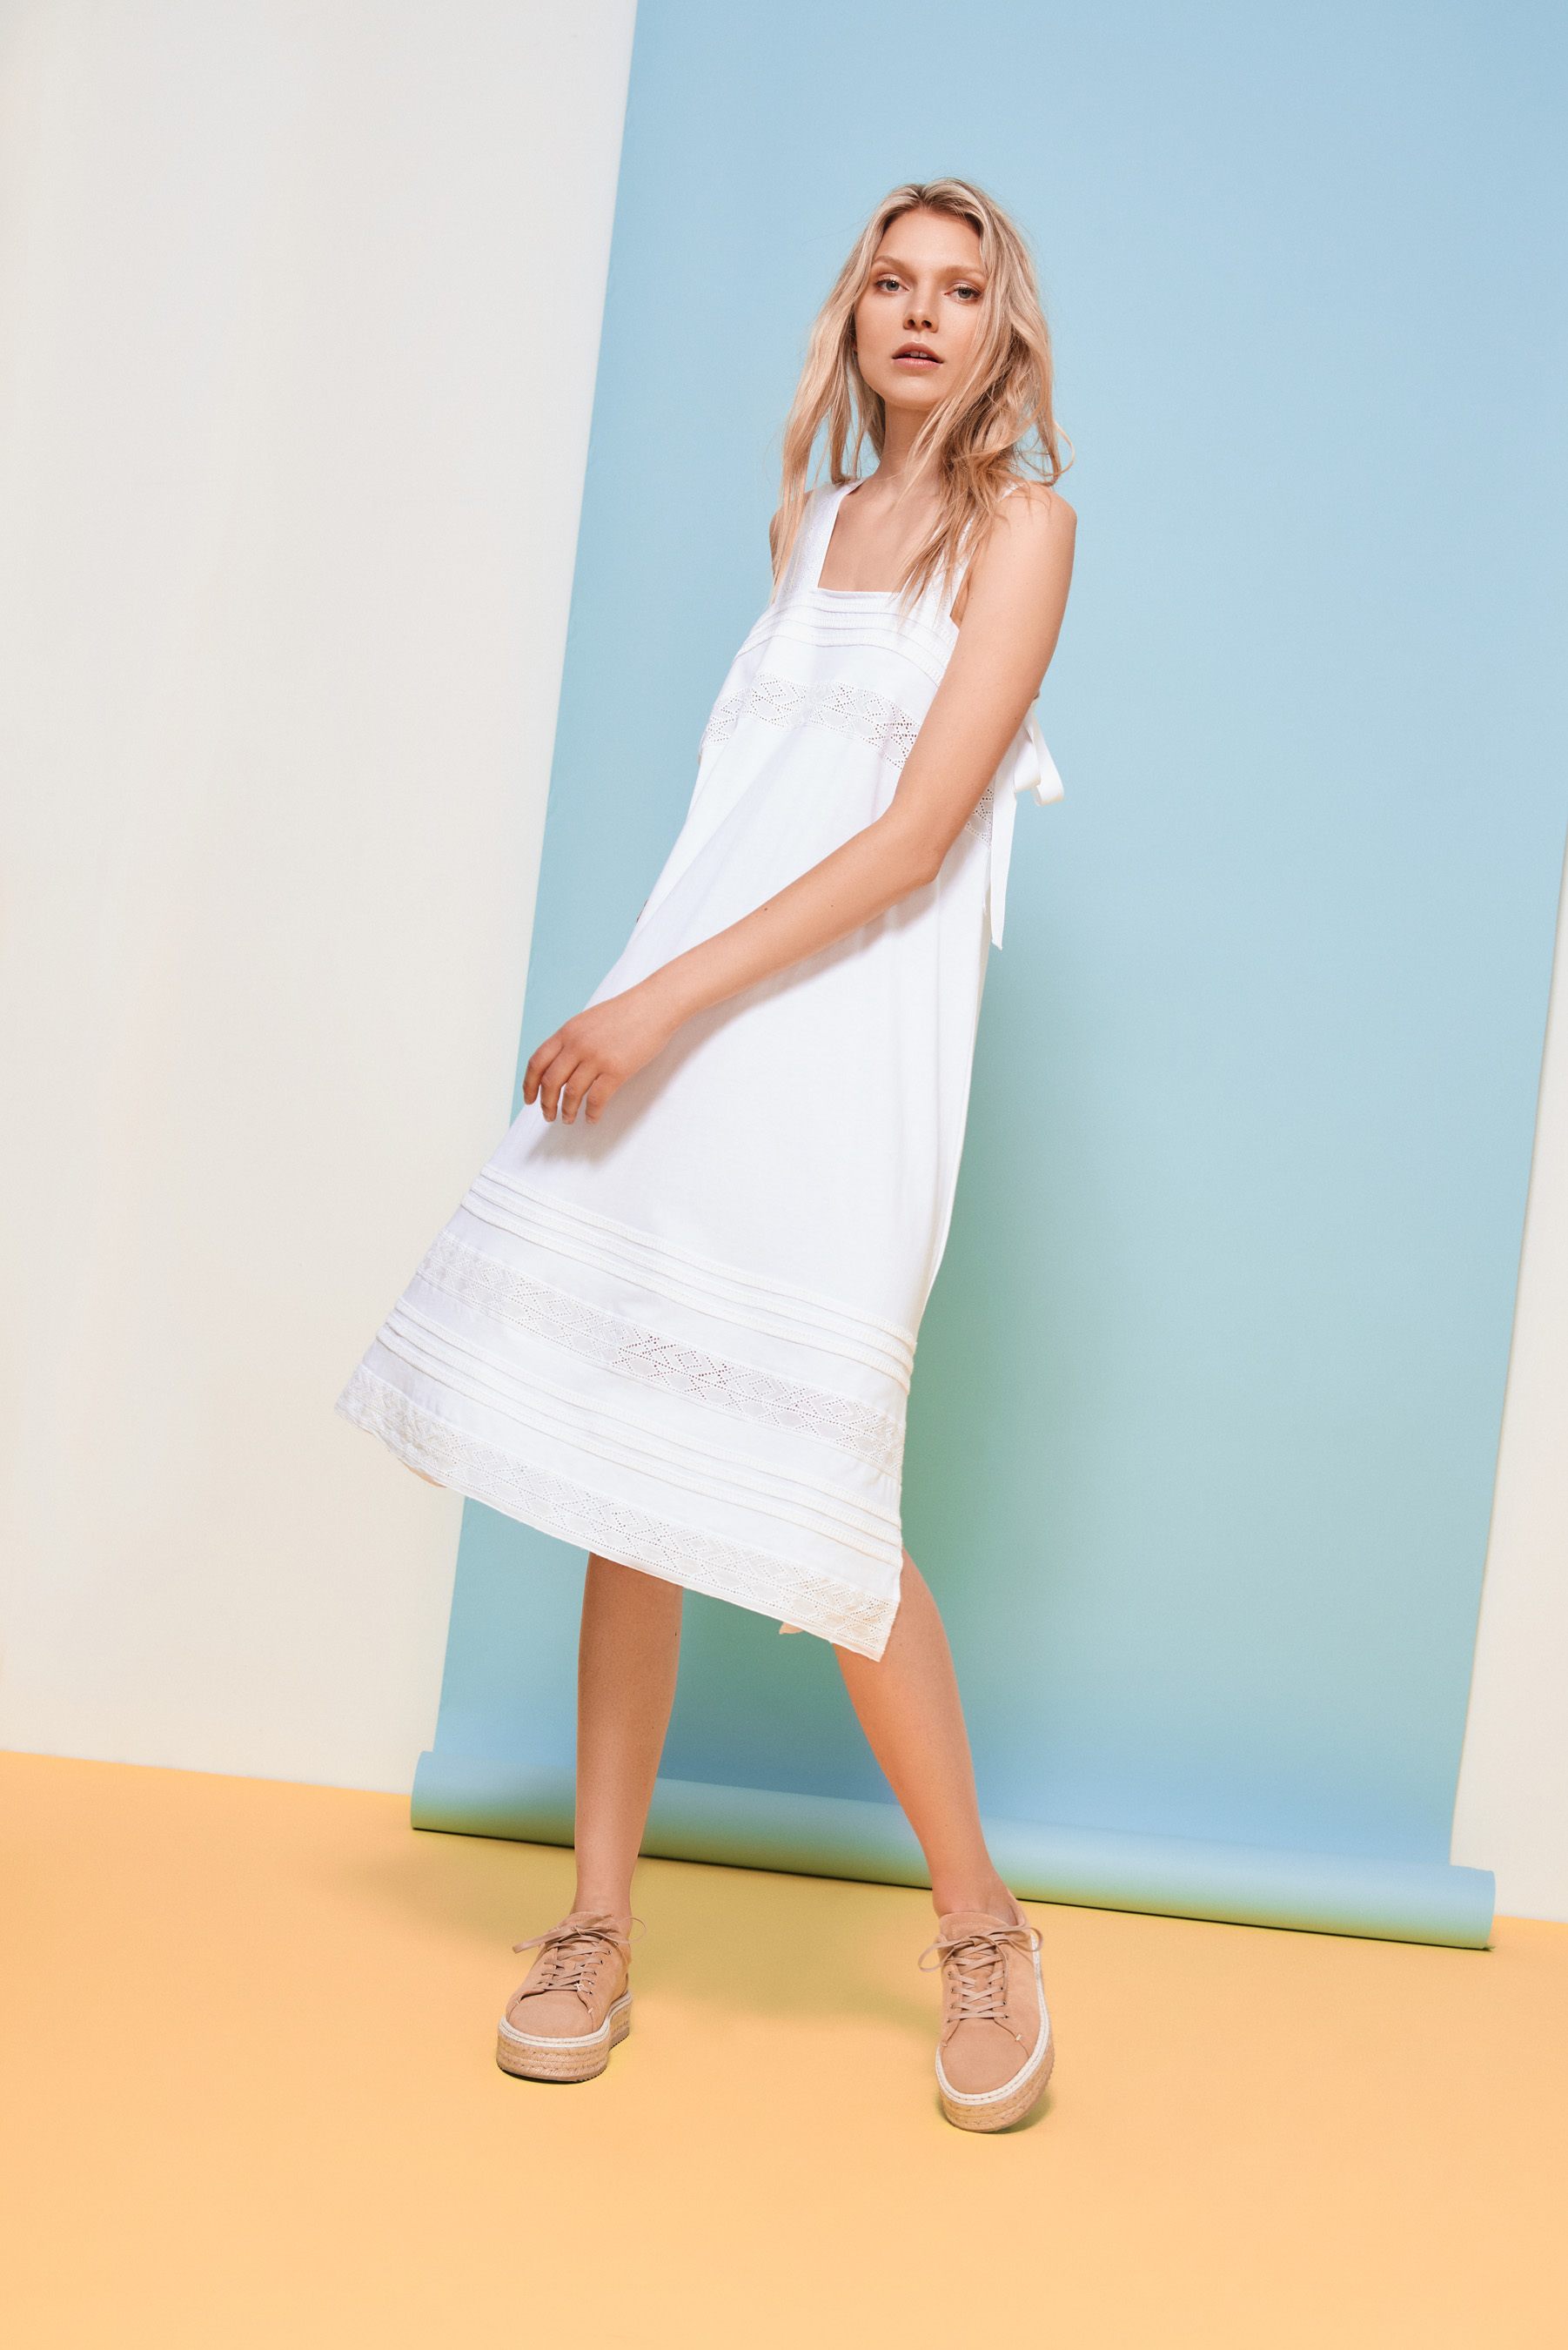 kinlyeditorial_ResortLookbookShoot_Sidetiedresswhite_029